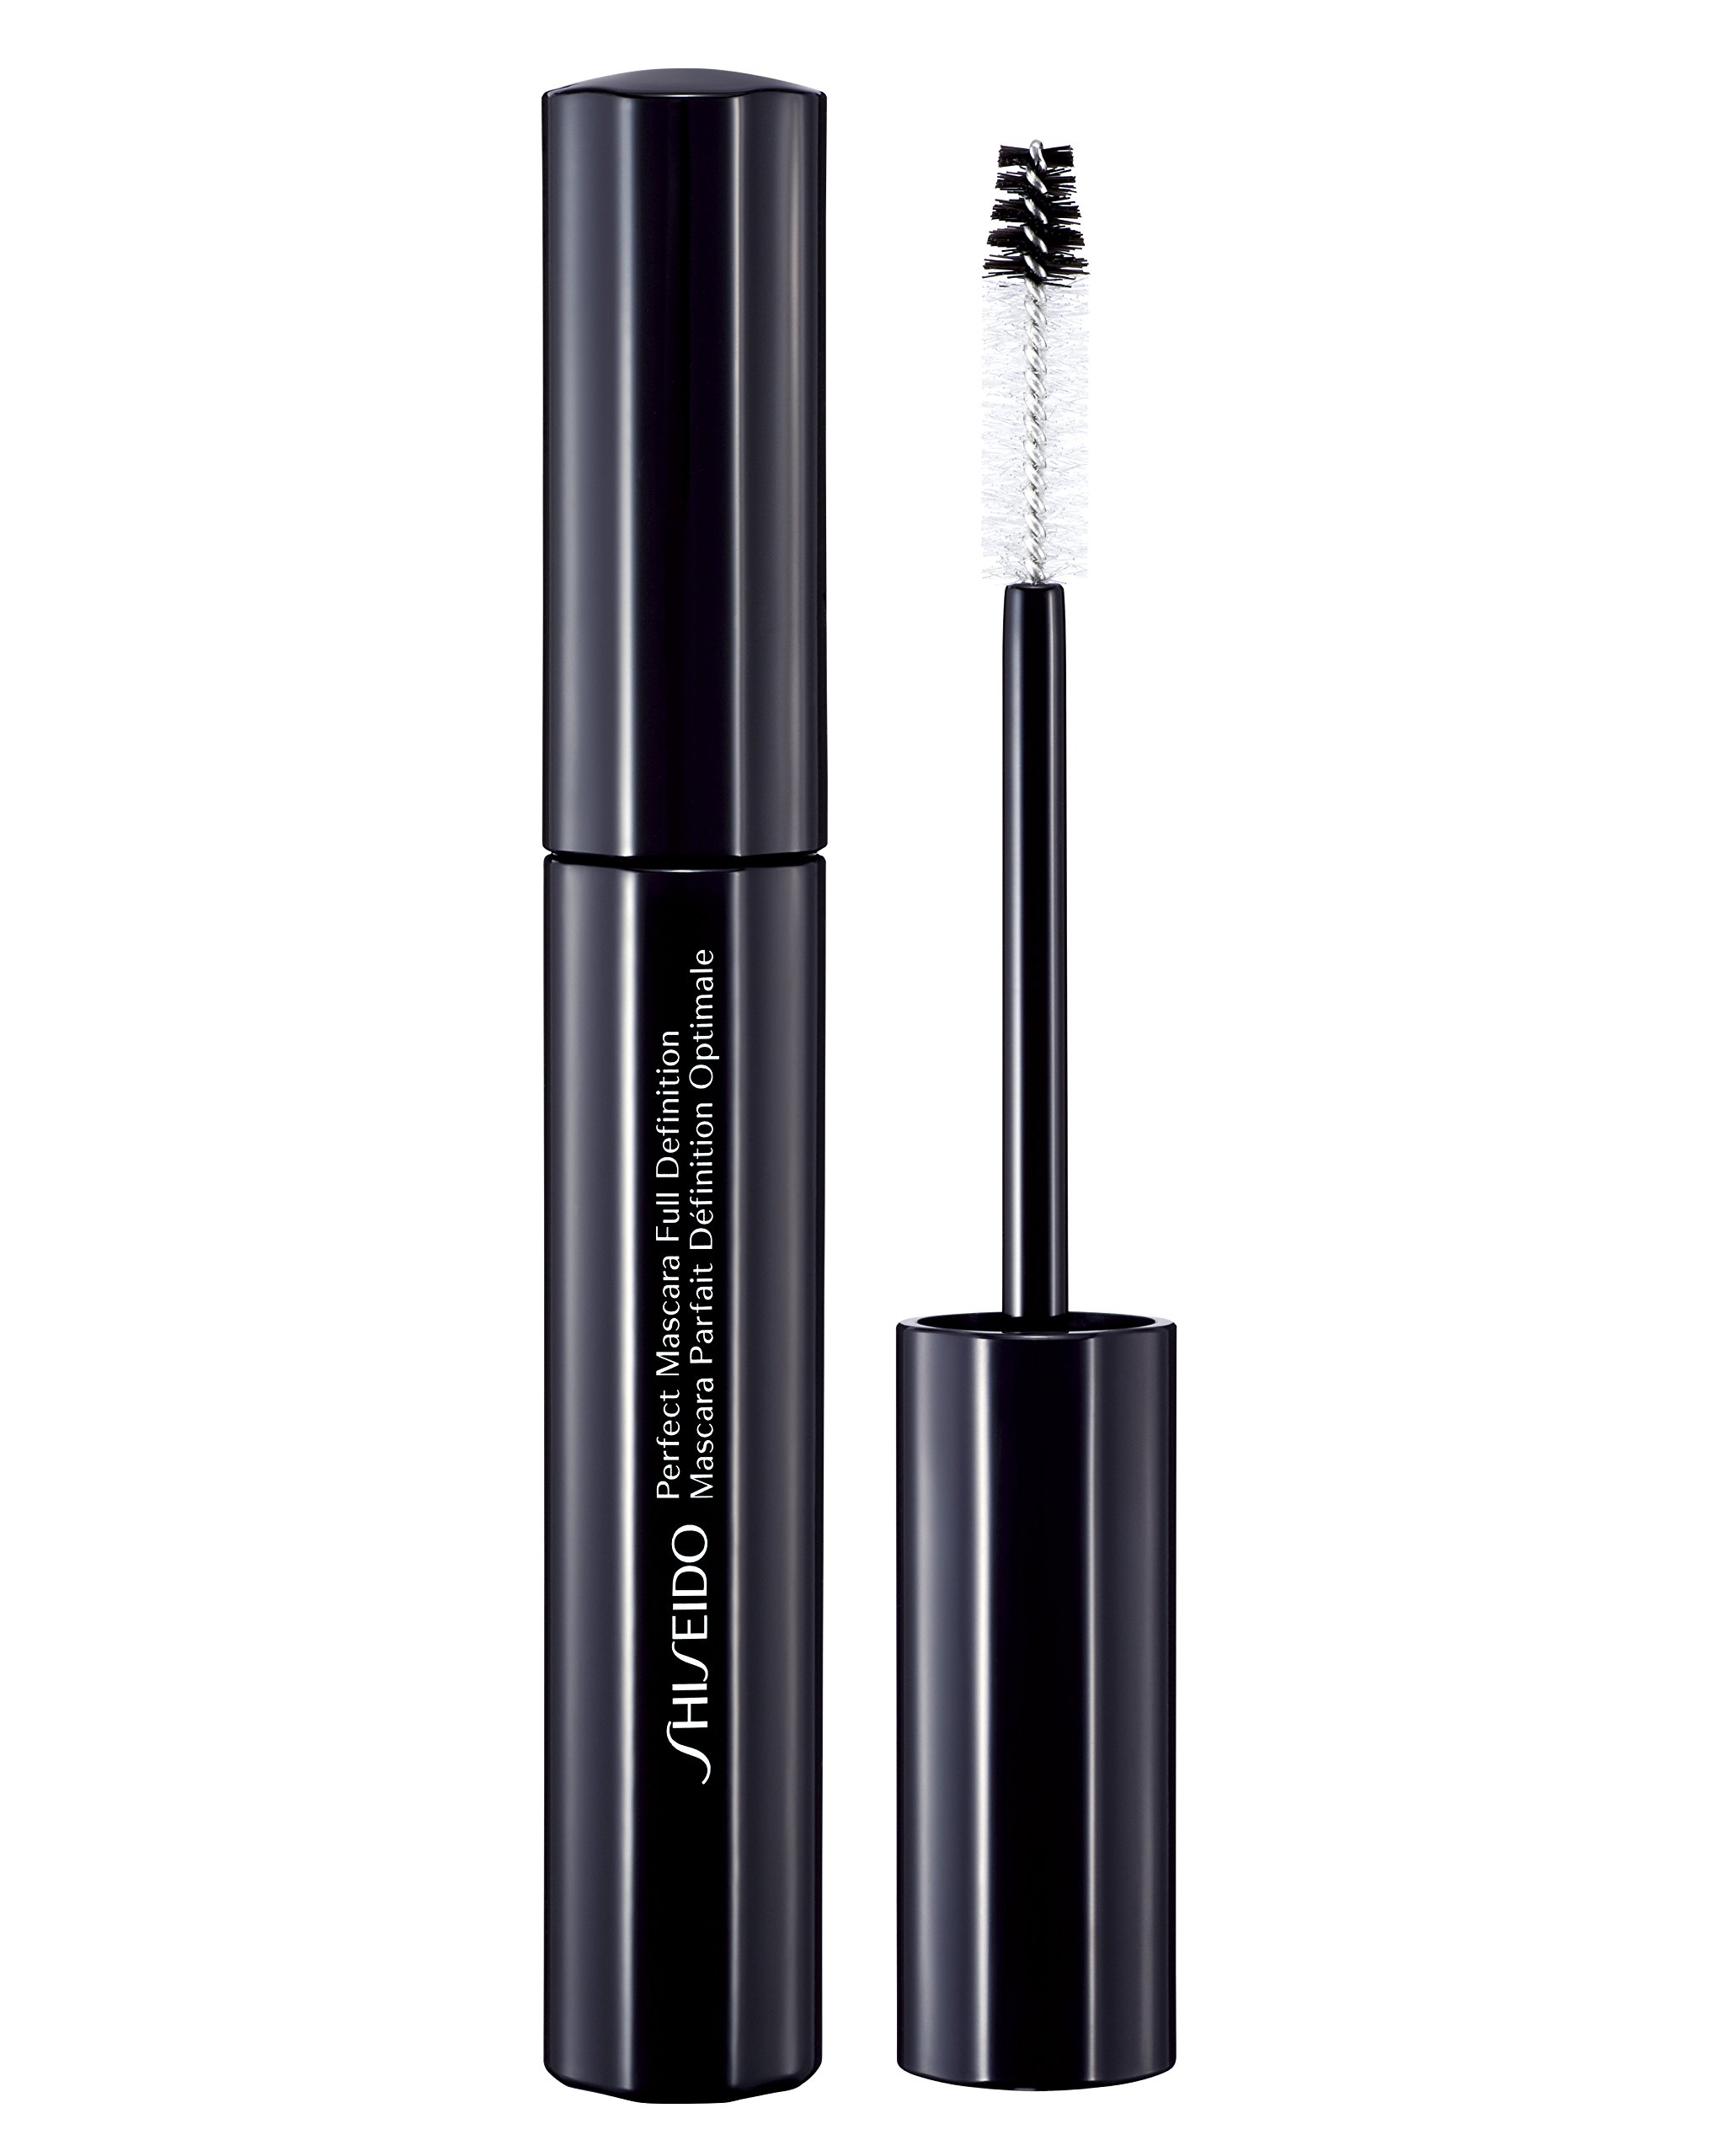 Shiseido Perfect Mascara Full Definition for Women, No. BK901 Black, 0.29 oz